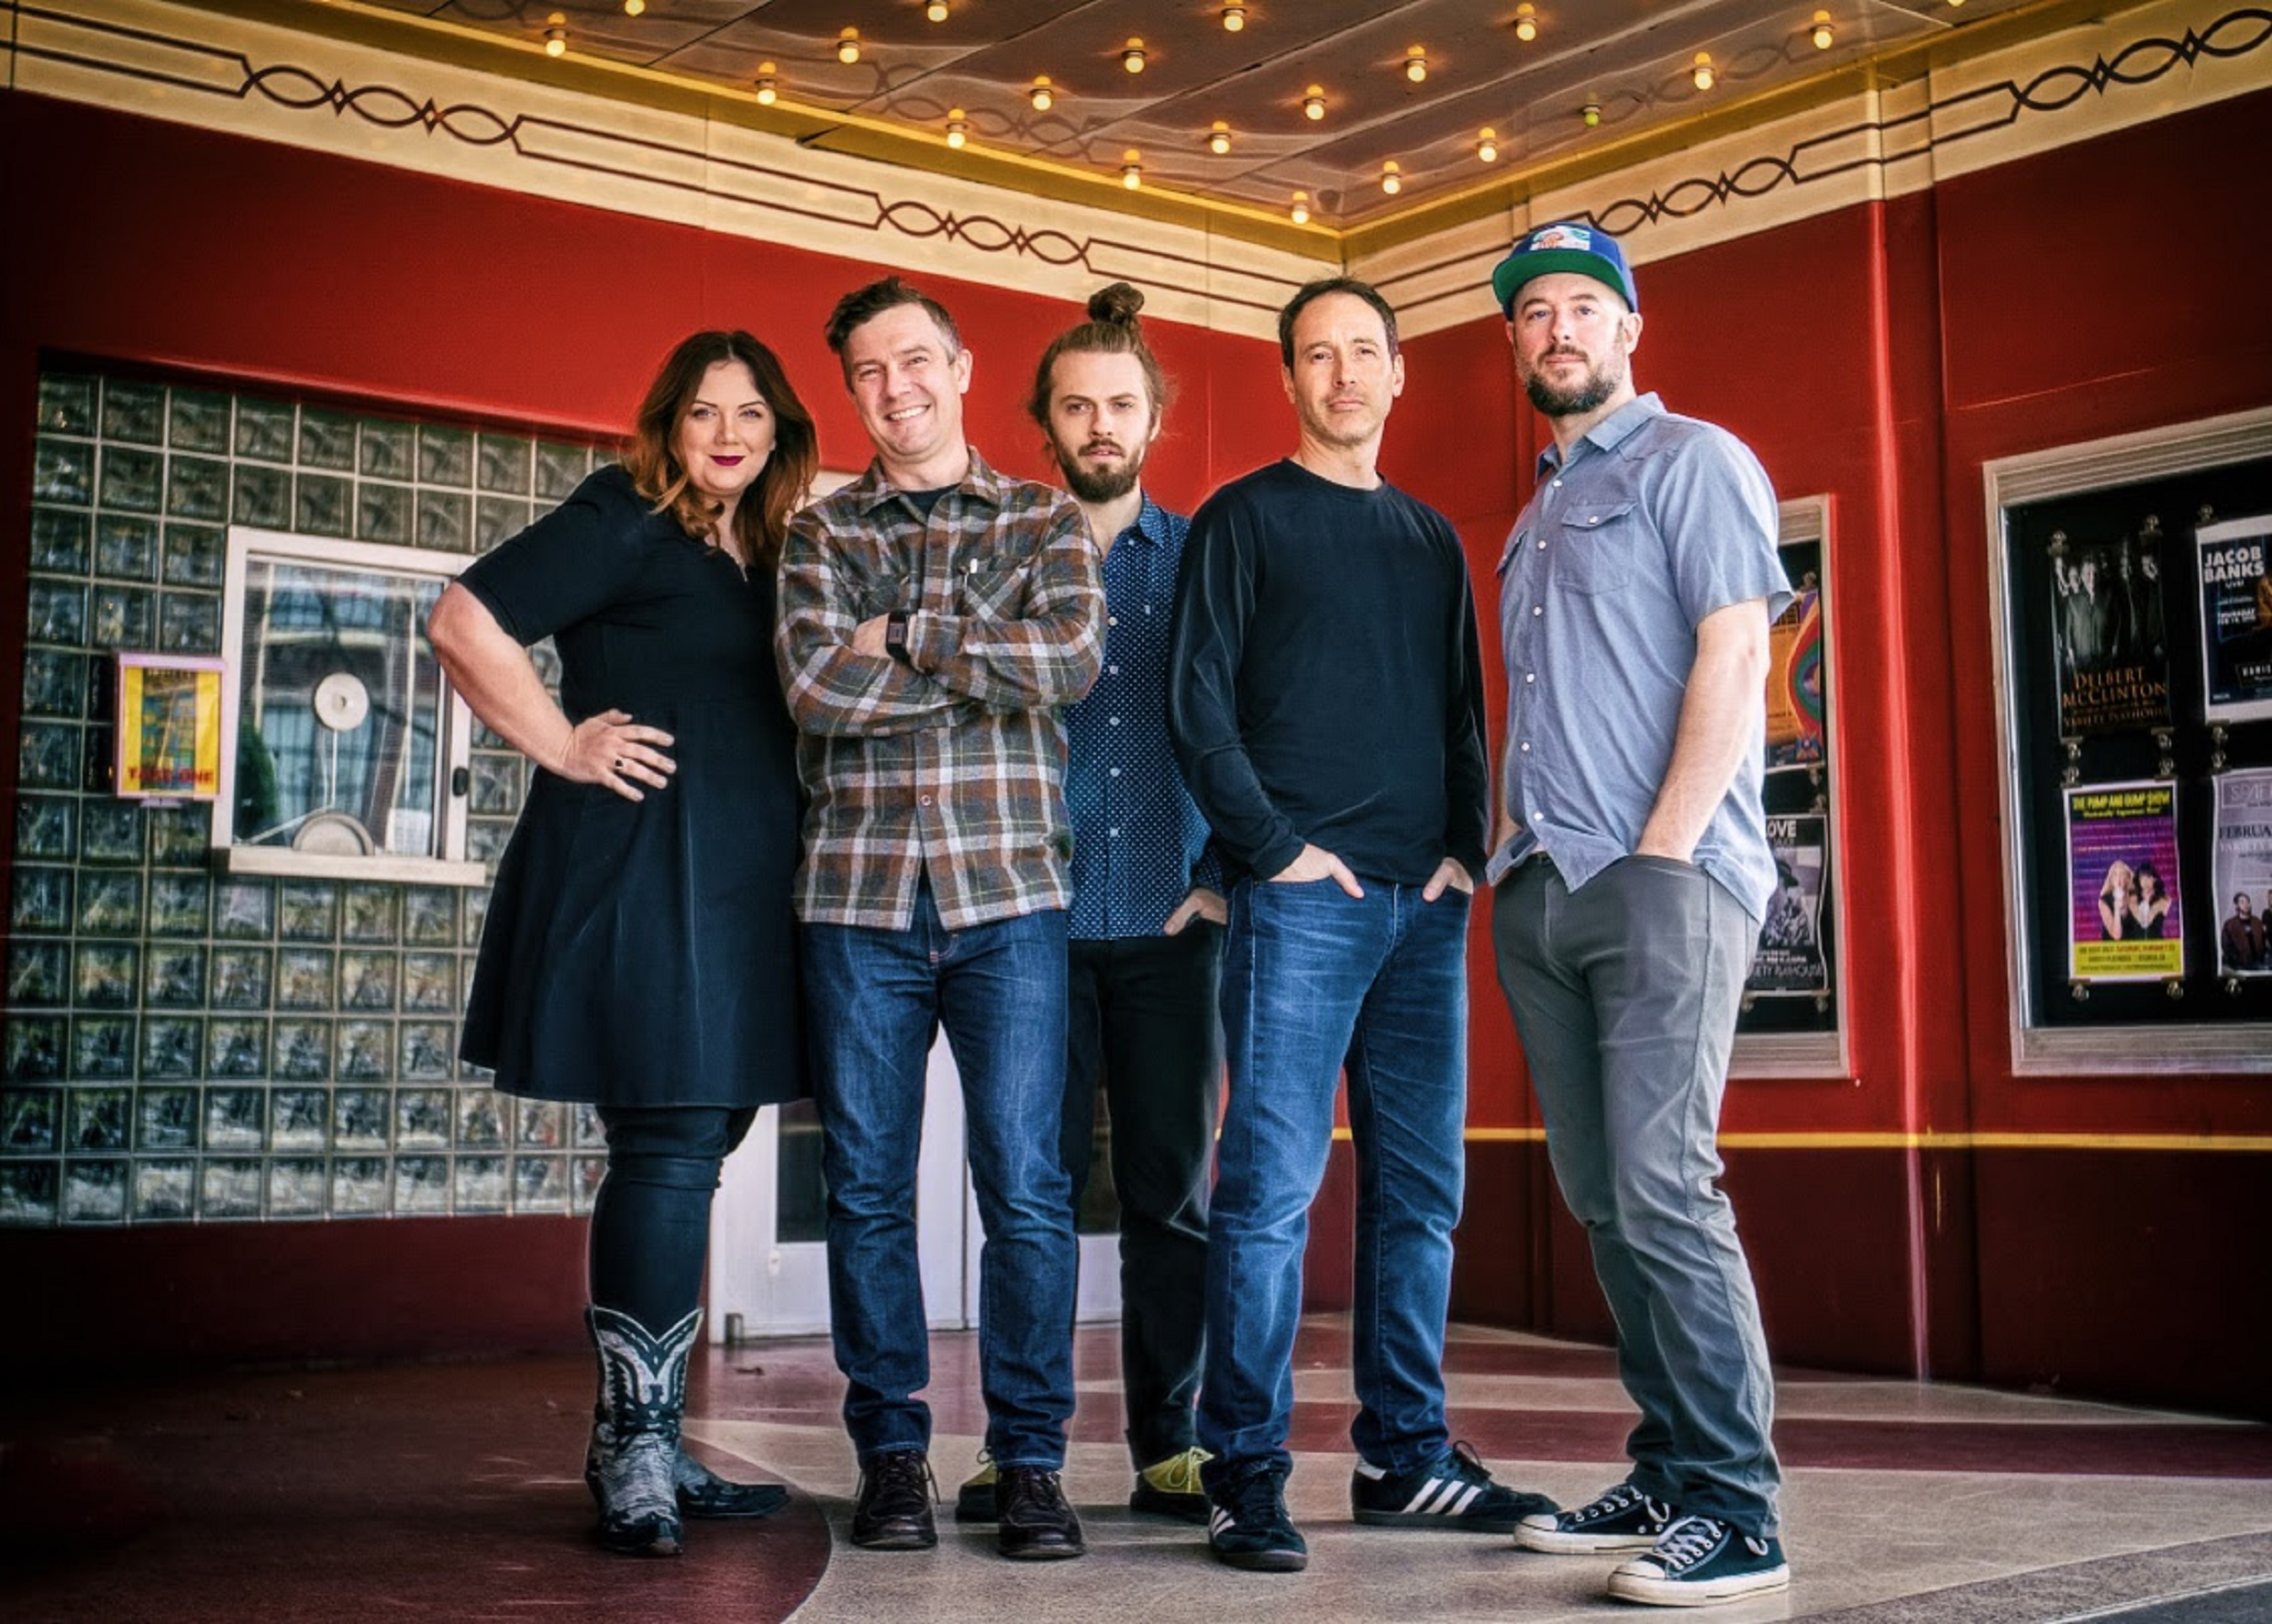 Longmont Oktoberfest Returns Sept. 20-21 Featuring Two Nights of Yonder Mountain String Band